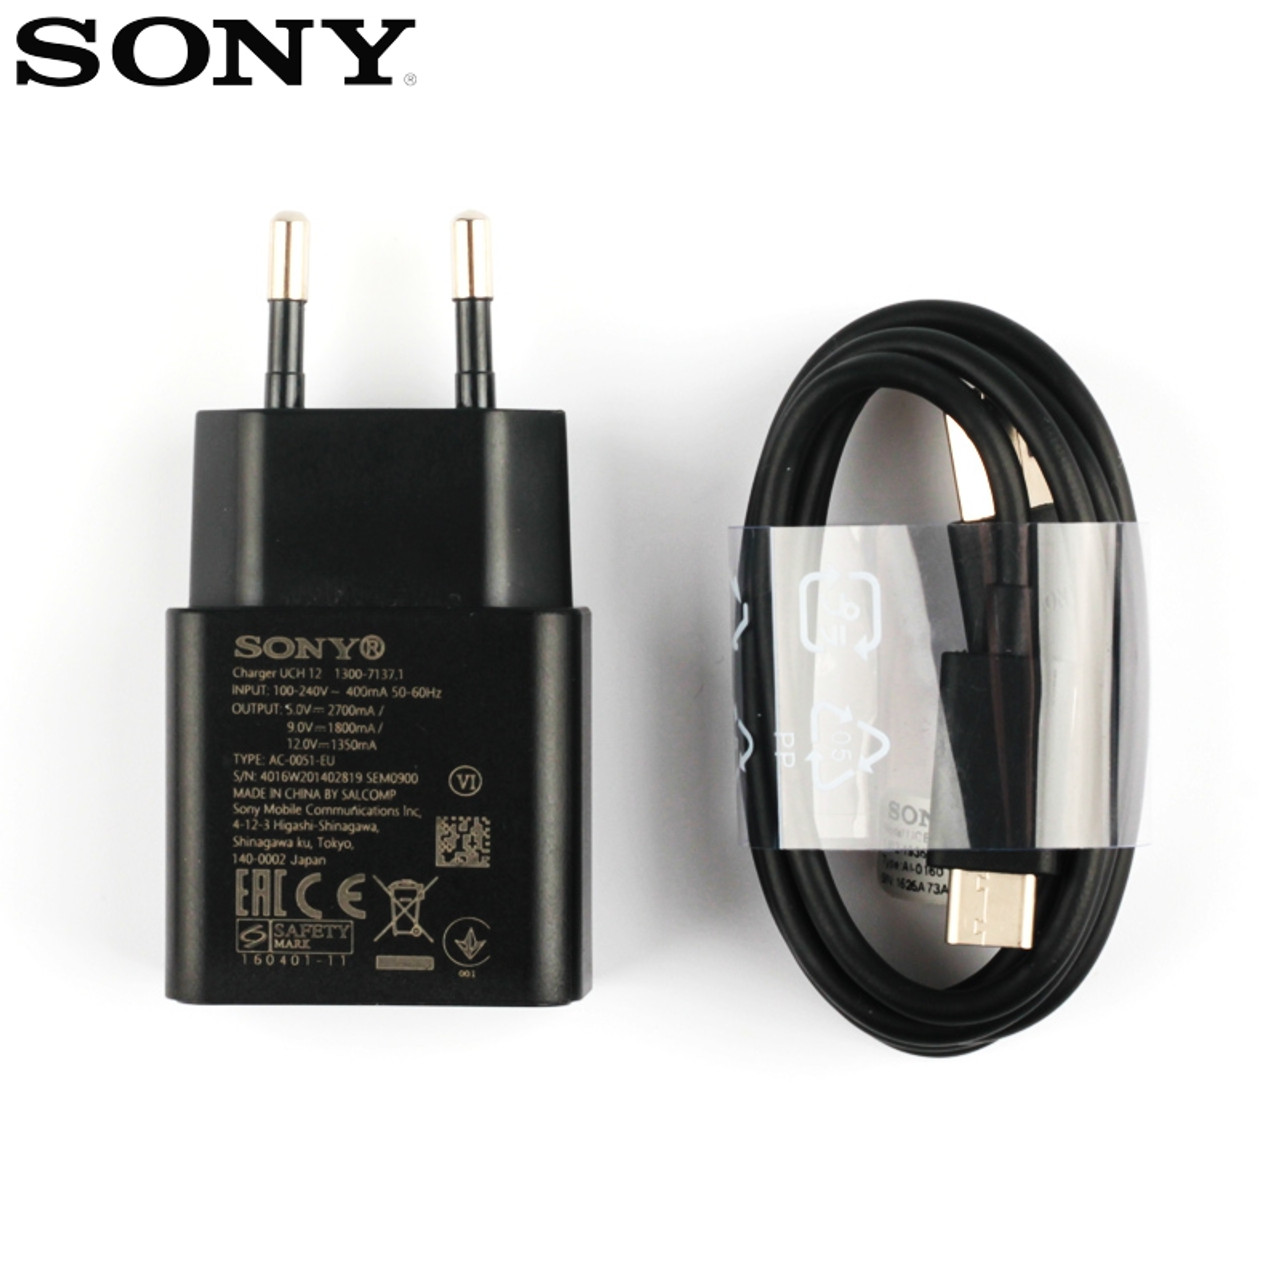 Quick Charge Qc 3.0 2-usb Car Charger Mobile Phone Accessories Type C Cable For Sony Xperia L1 L2 Xz Xzs Xz1 Xz2 Premium X Compact Xa1 Plus Xa2 Ultra Cellphones & Telecommunications